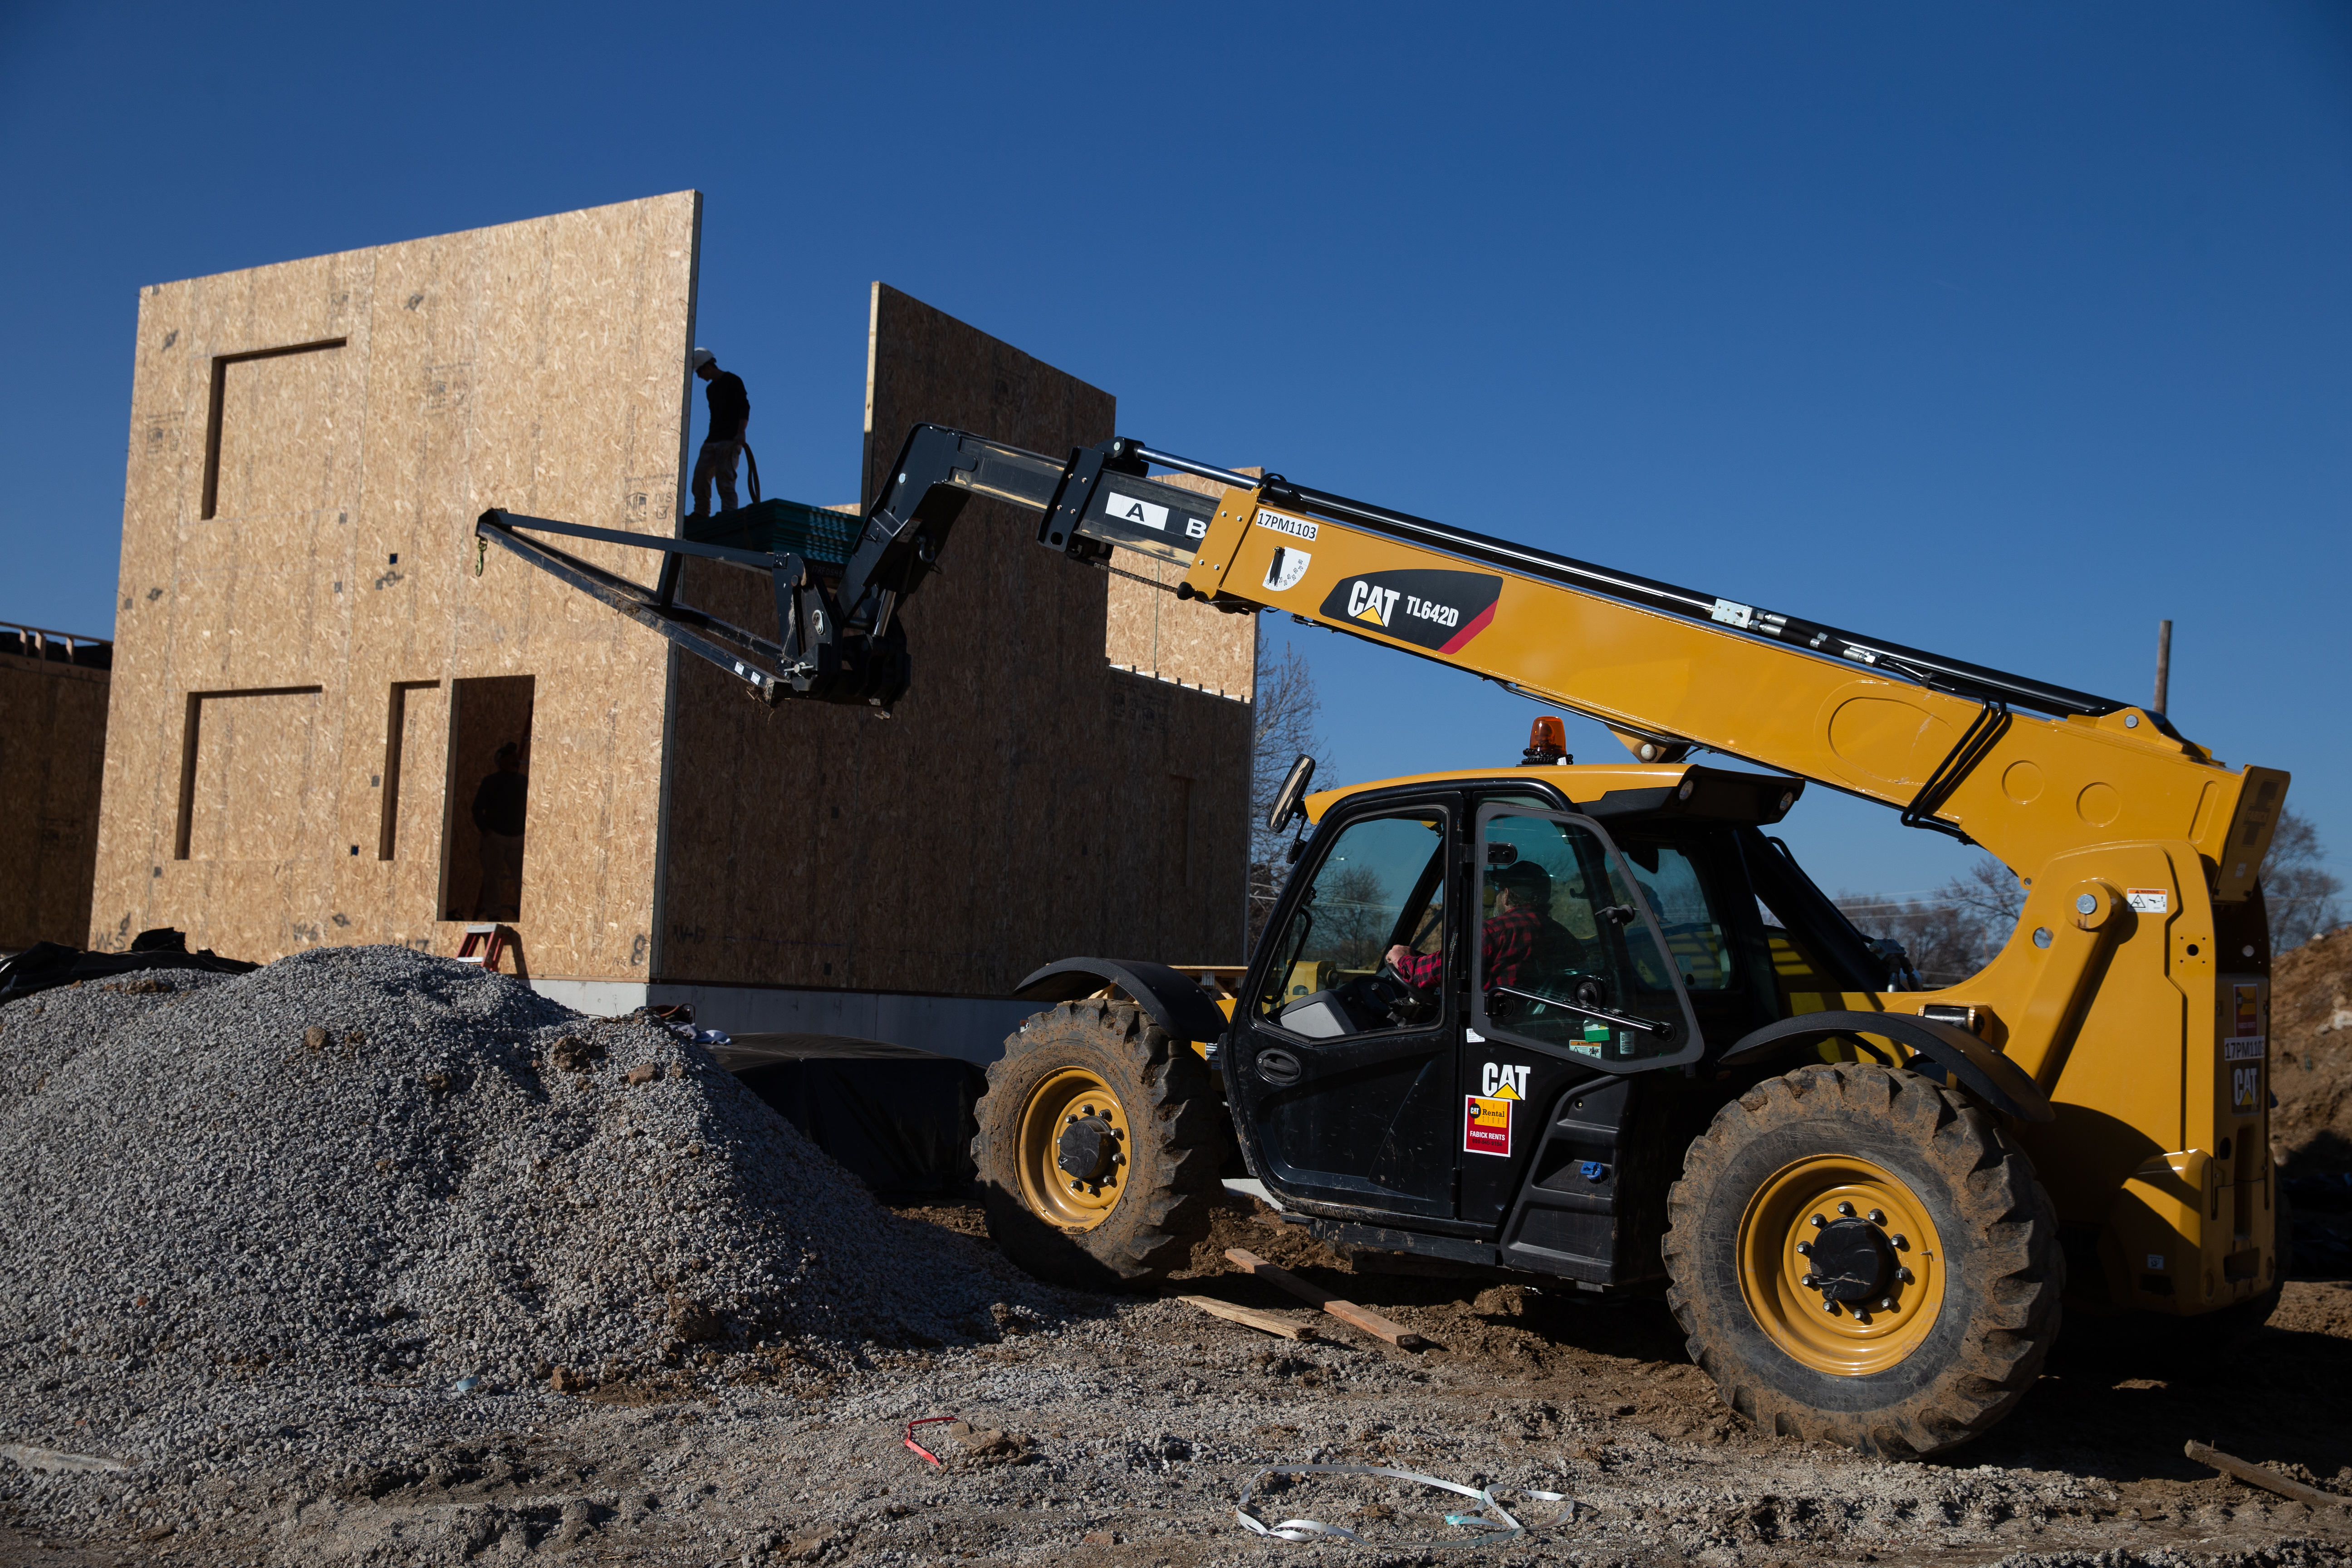 Ground broken on 'green' model homes on north side